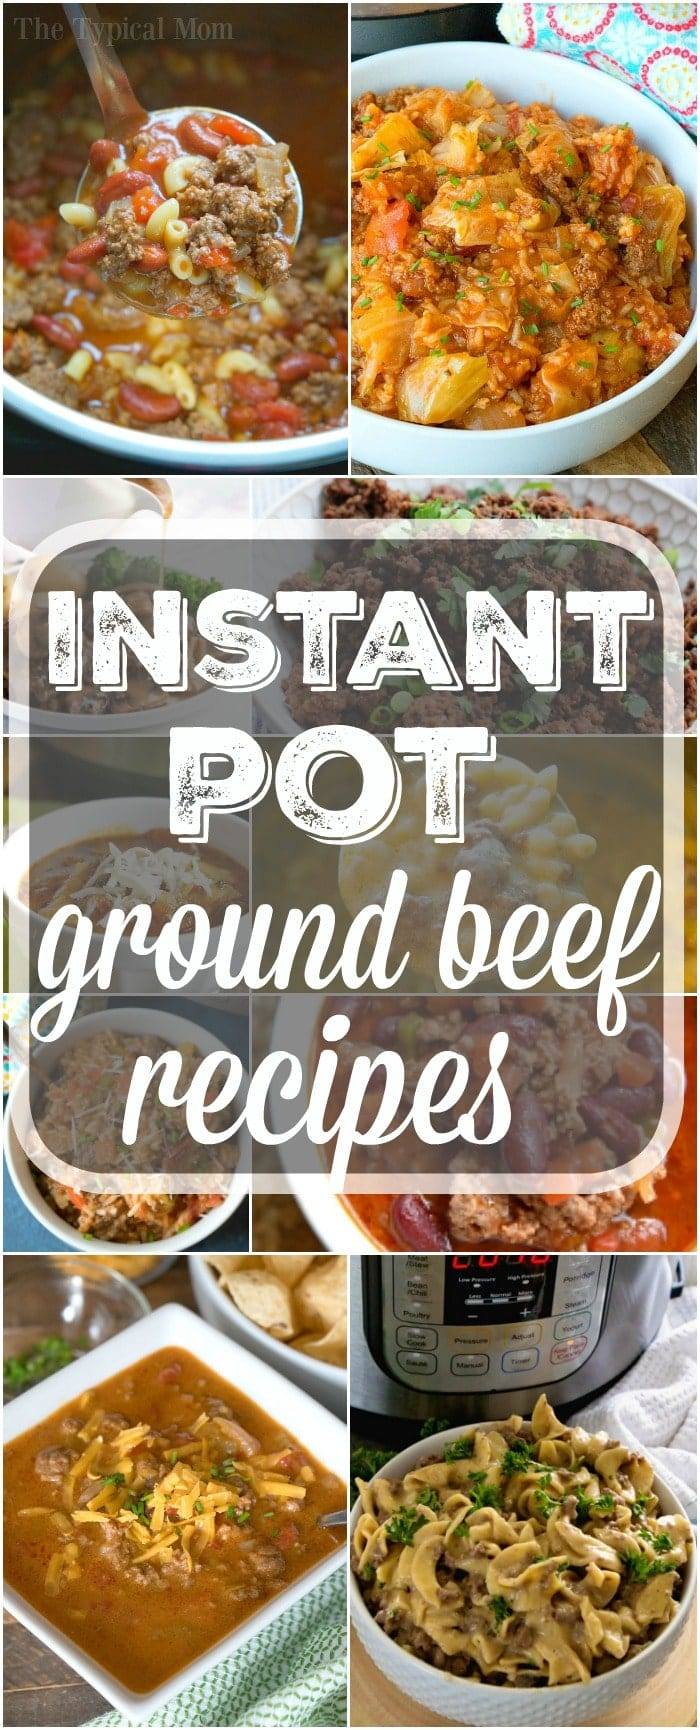 Easy Instant Pot ground beef recipes your whole family will love for dinner or lunch! Simple comfort food recipes using ground beef or turkey that are hearty and take less than 30 minutes total from prep to on the table. The best way to have family dinner nights when you're a busy mom. #instantpot #pressurecooker #groundbeef #recipes #easy #simple #beef